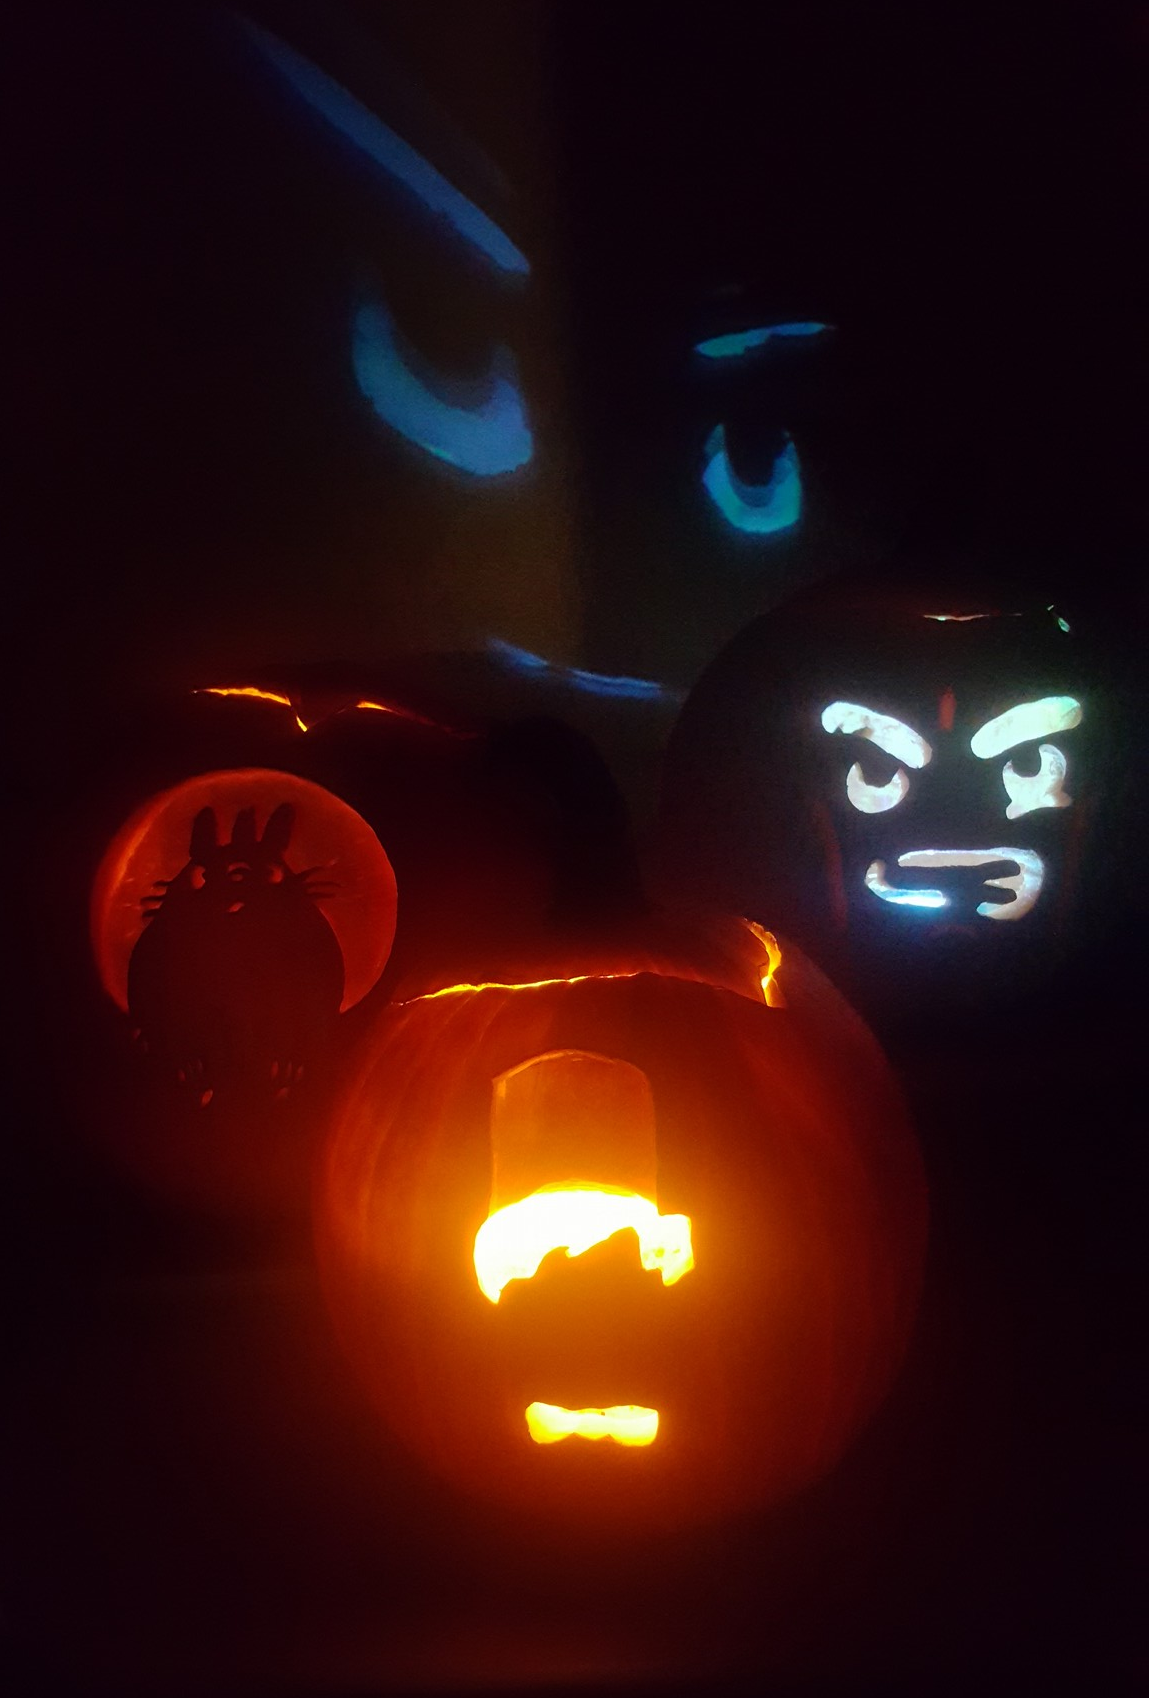 Lego, Totoro, and Doctor Who Pumpkins created with the Pumpkin Gutter carving tool 2017